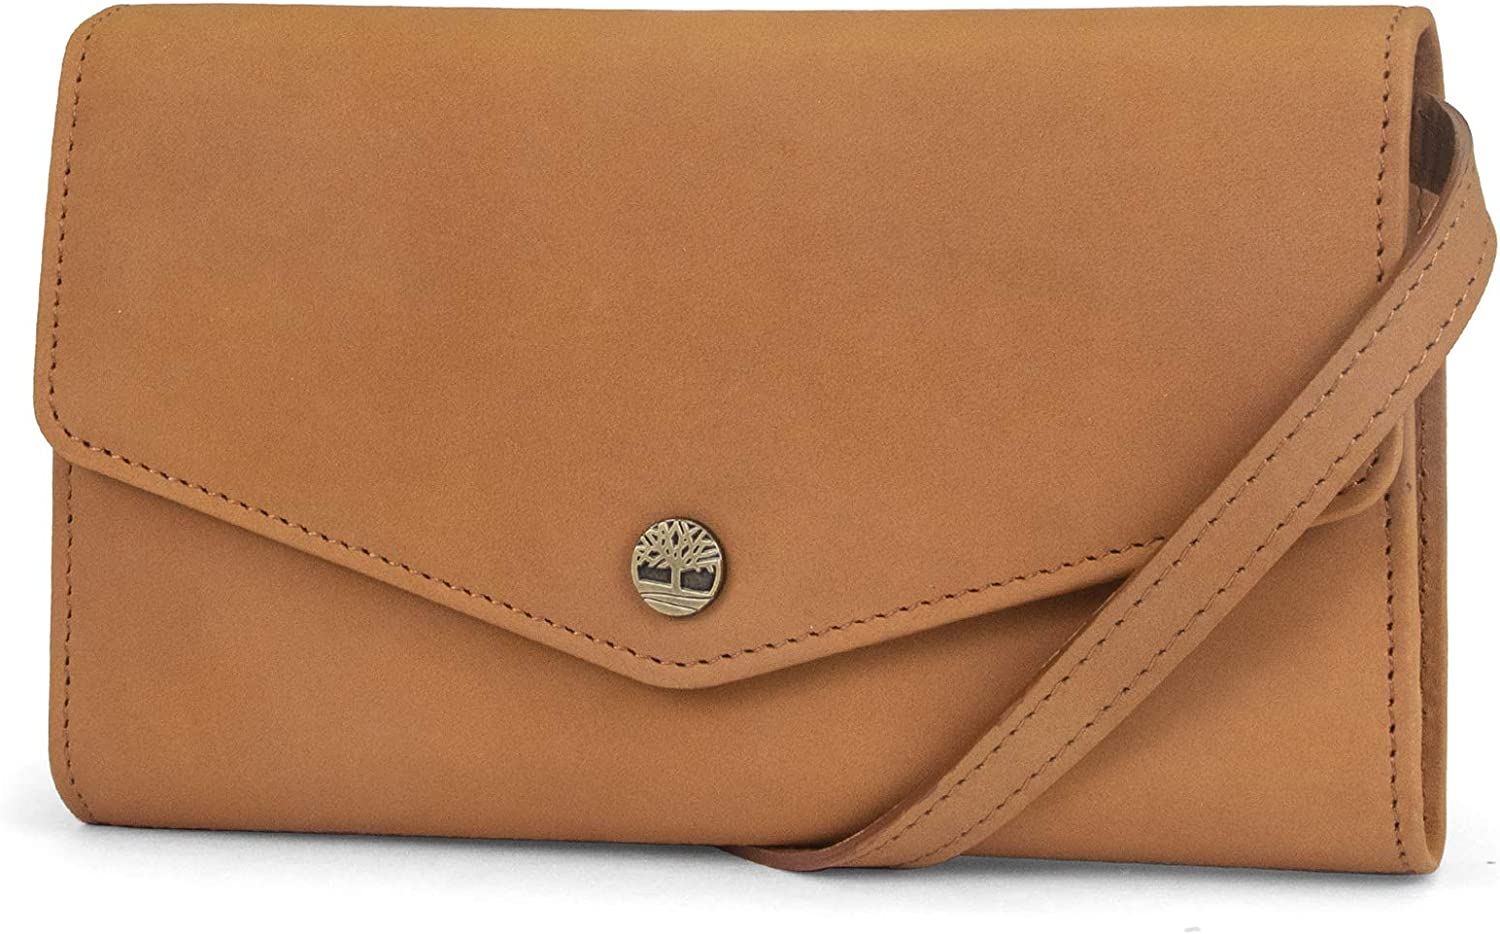 Timberland Women's RFID Leather Wallet Phone Bag with Detachable Crossbody Strap